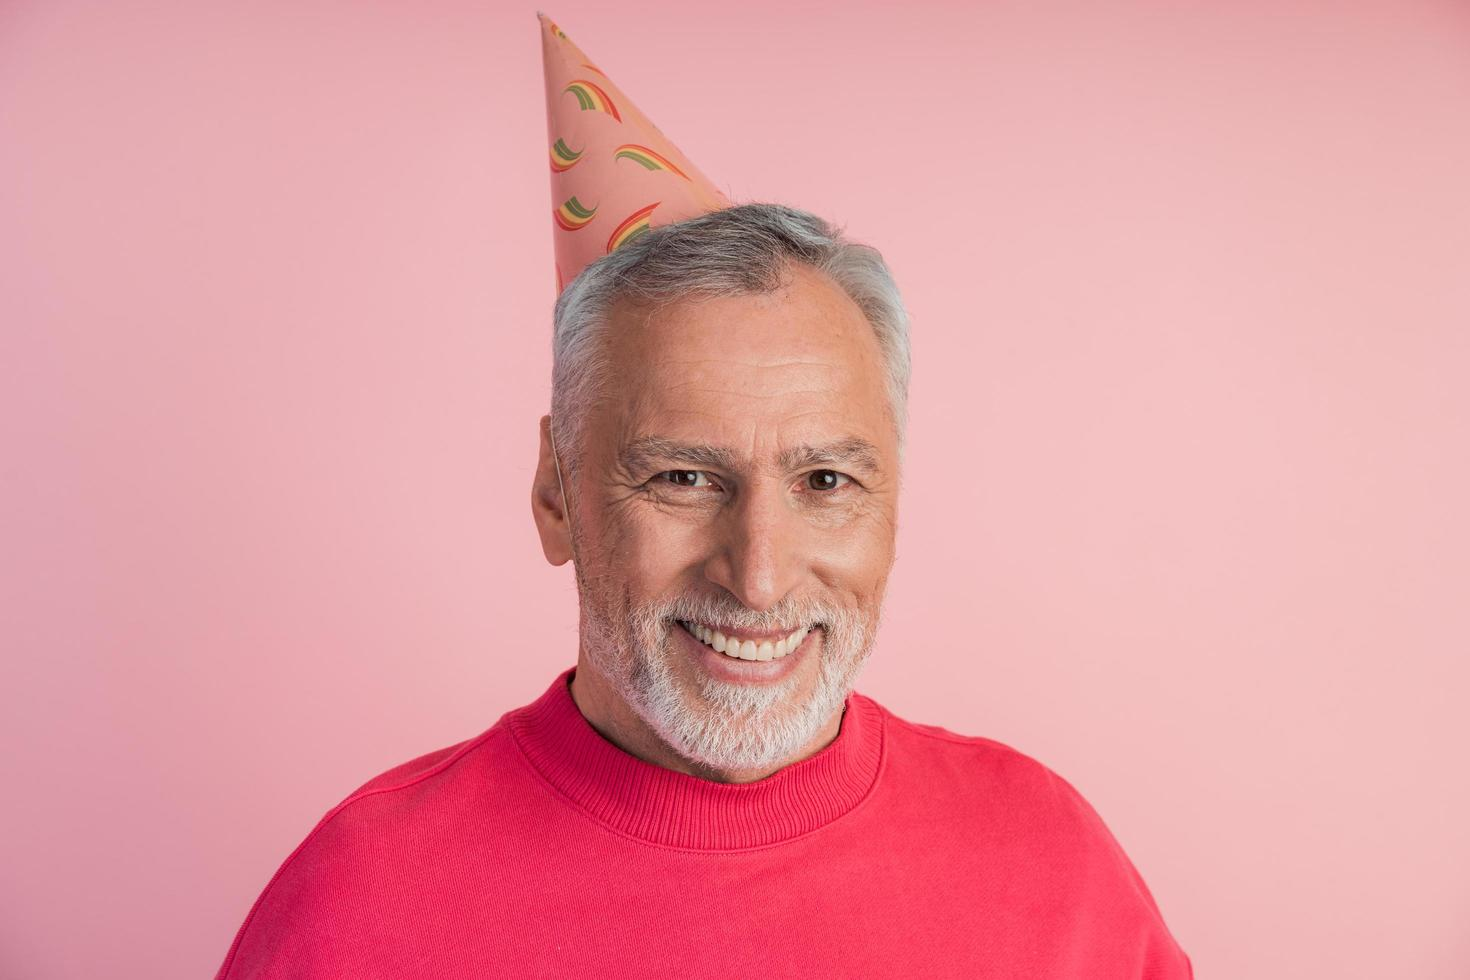 Cheerful, smiling man in a festive hat on a pink background. photo